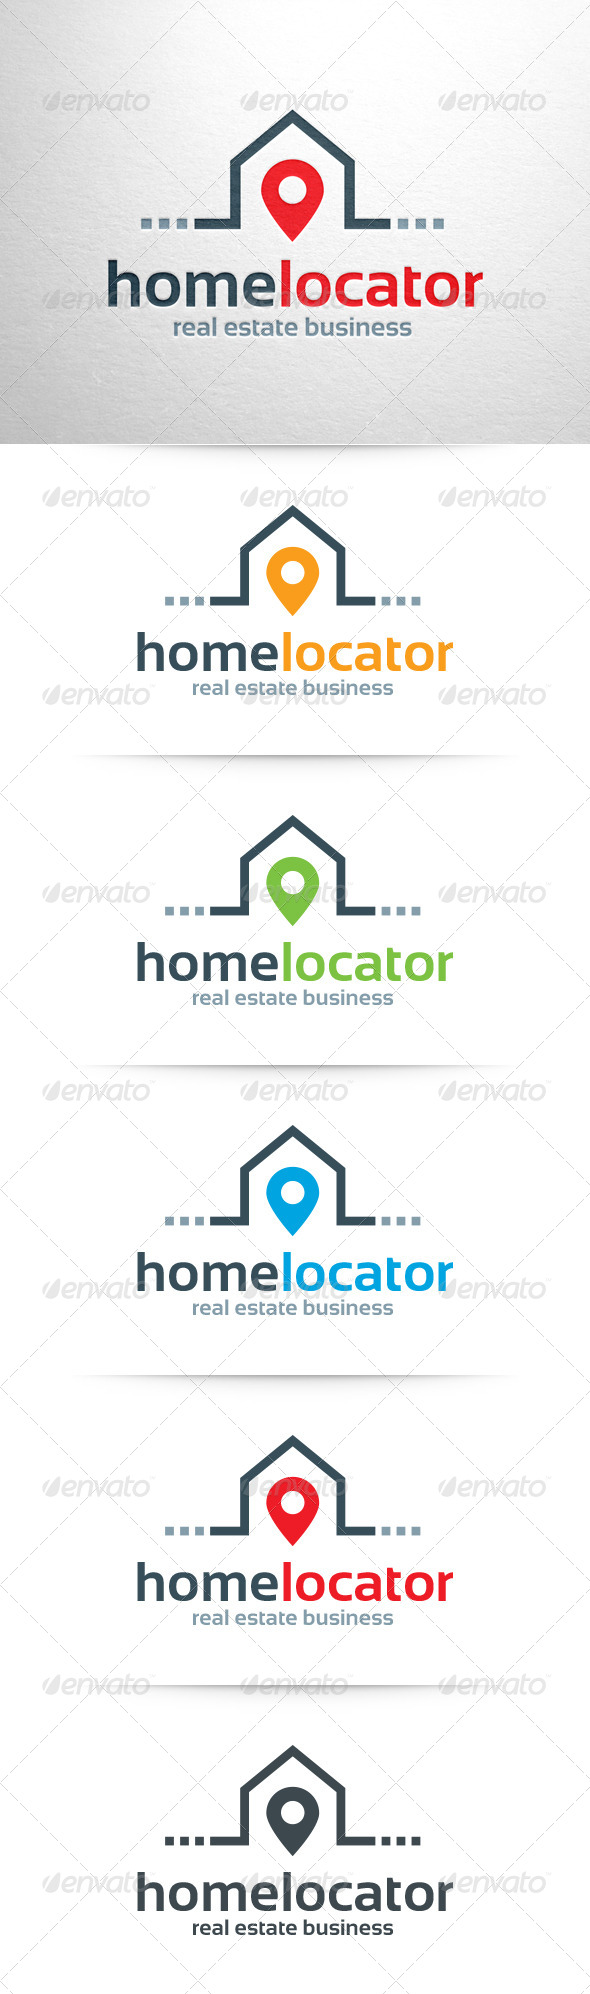 GraphicRiver Home Locator Logo Template 6550758